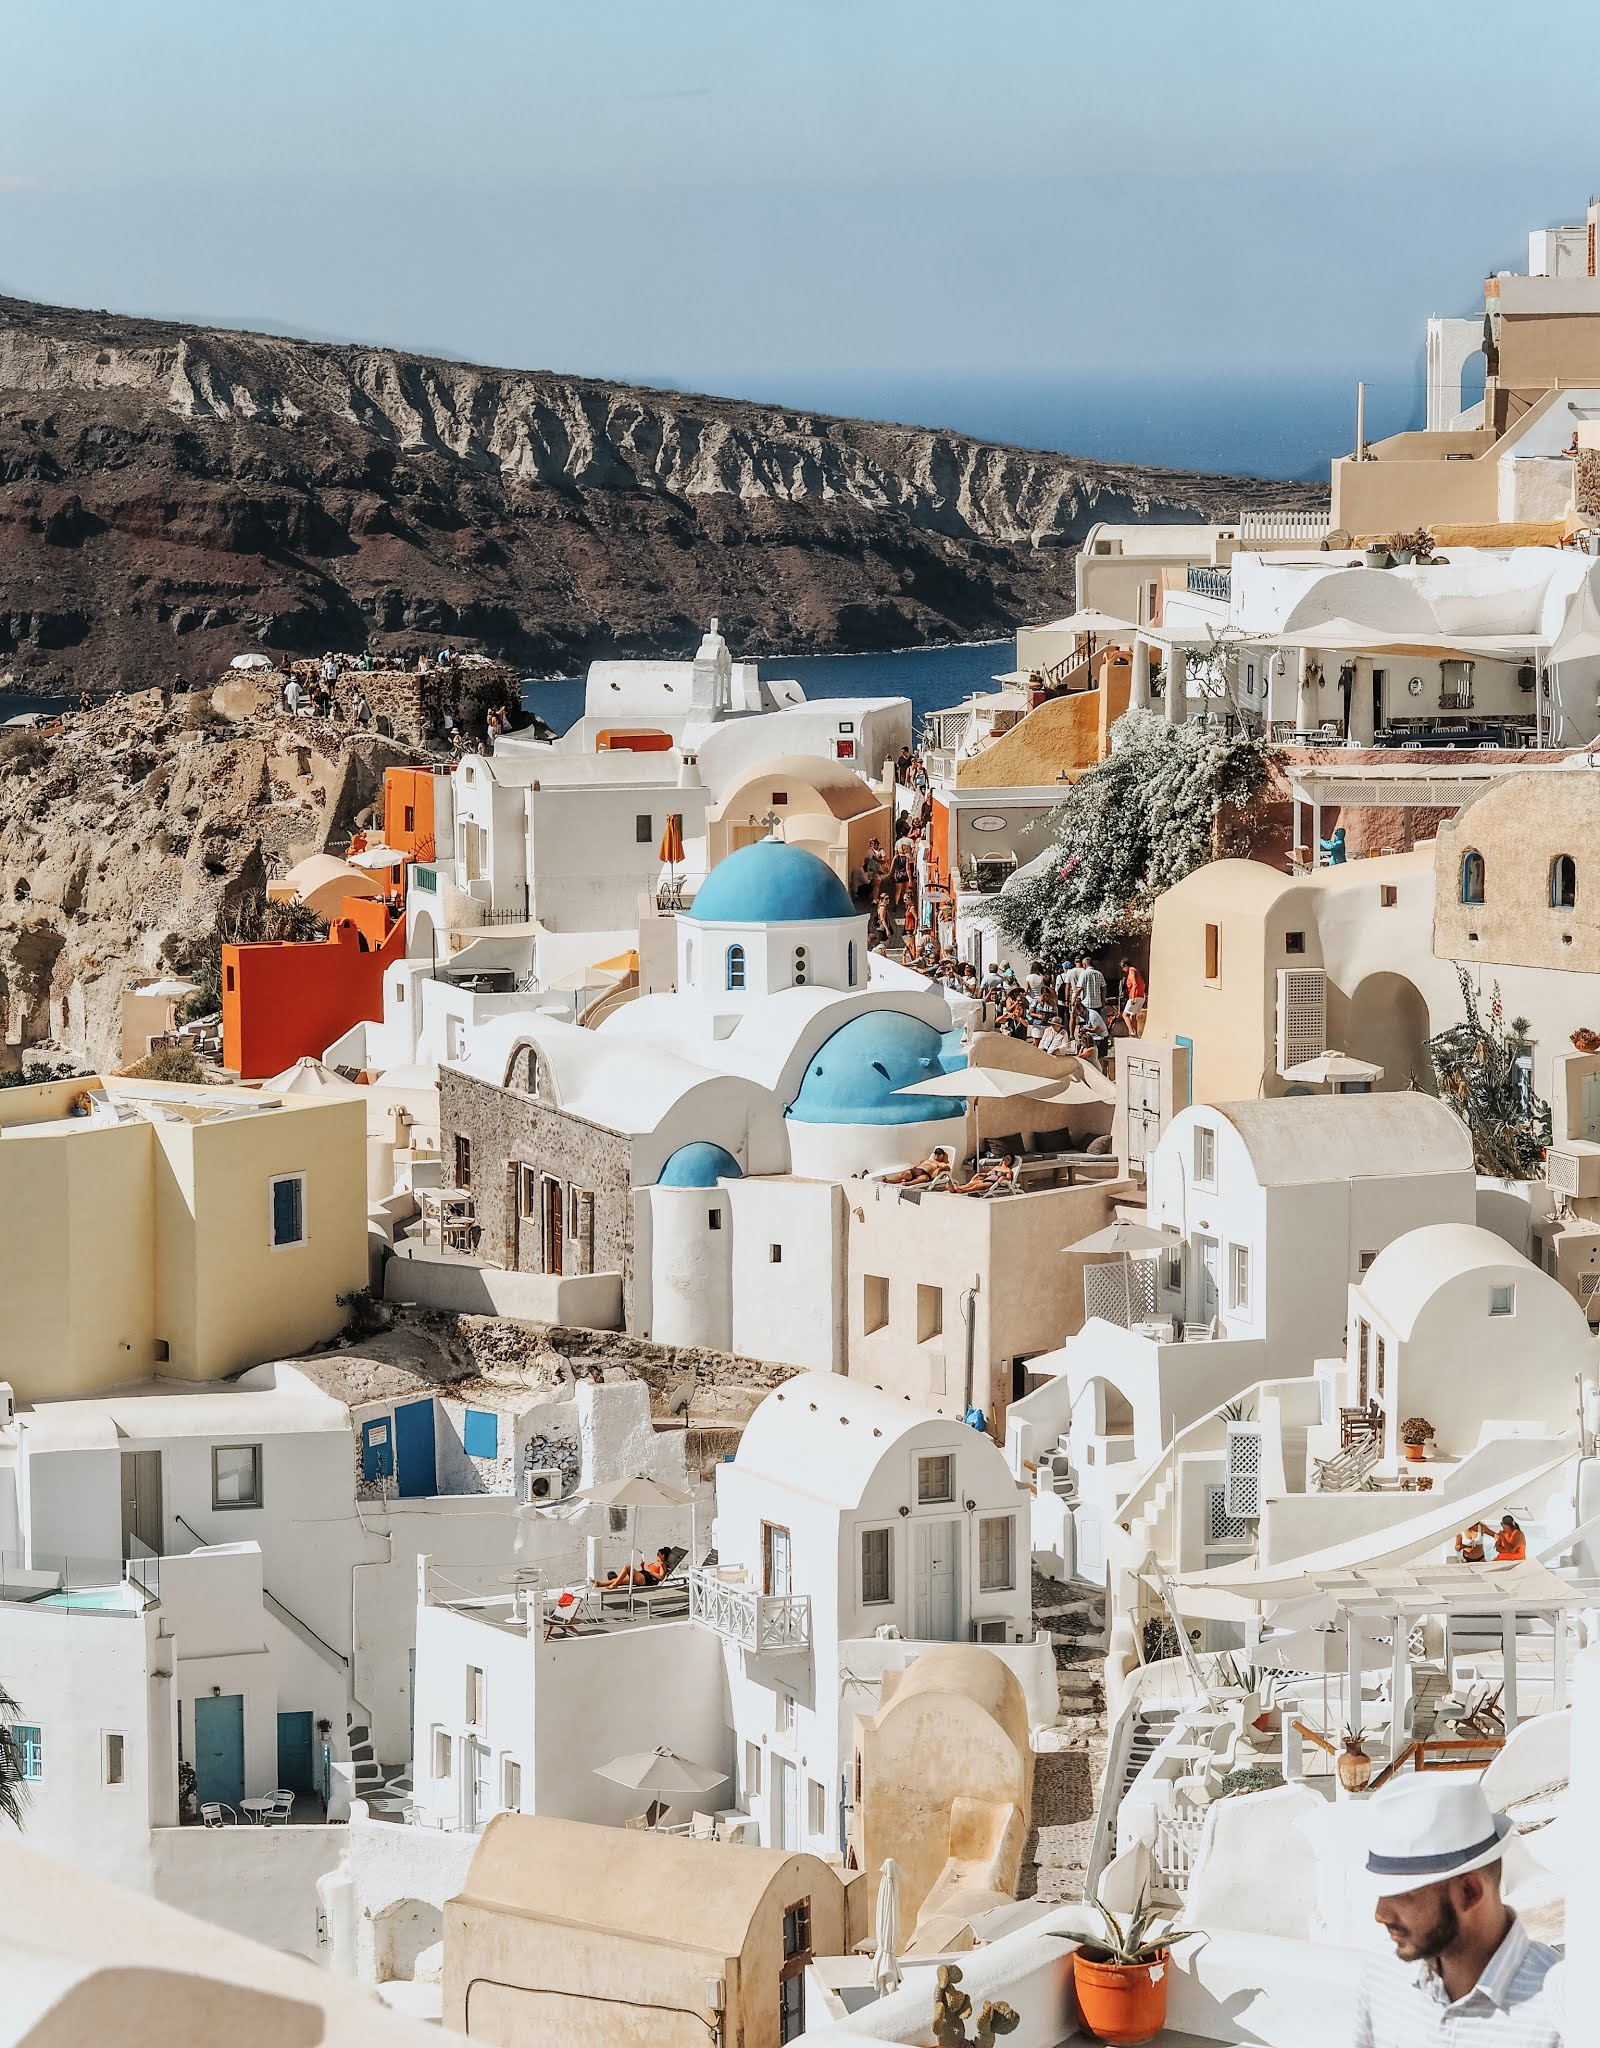 White RoofTop View of Santorini, Greece